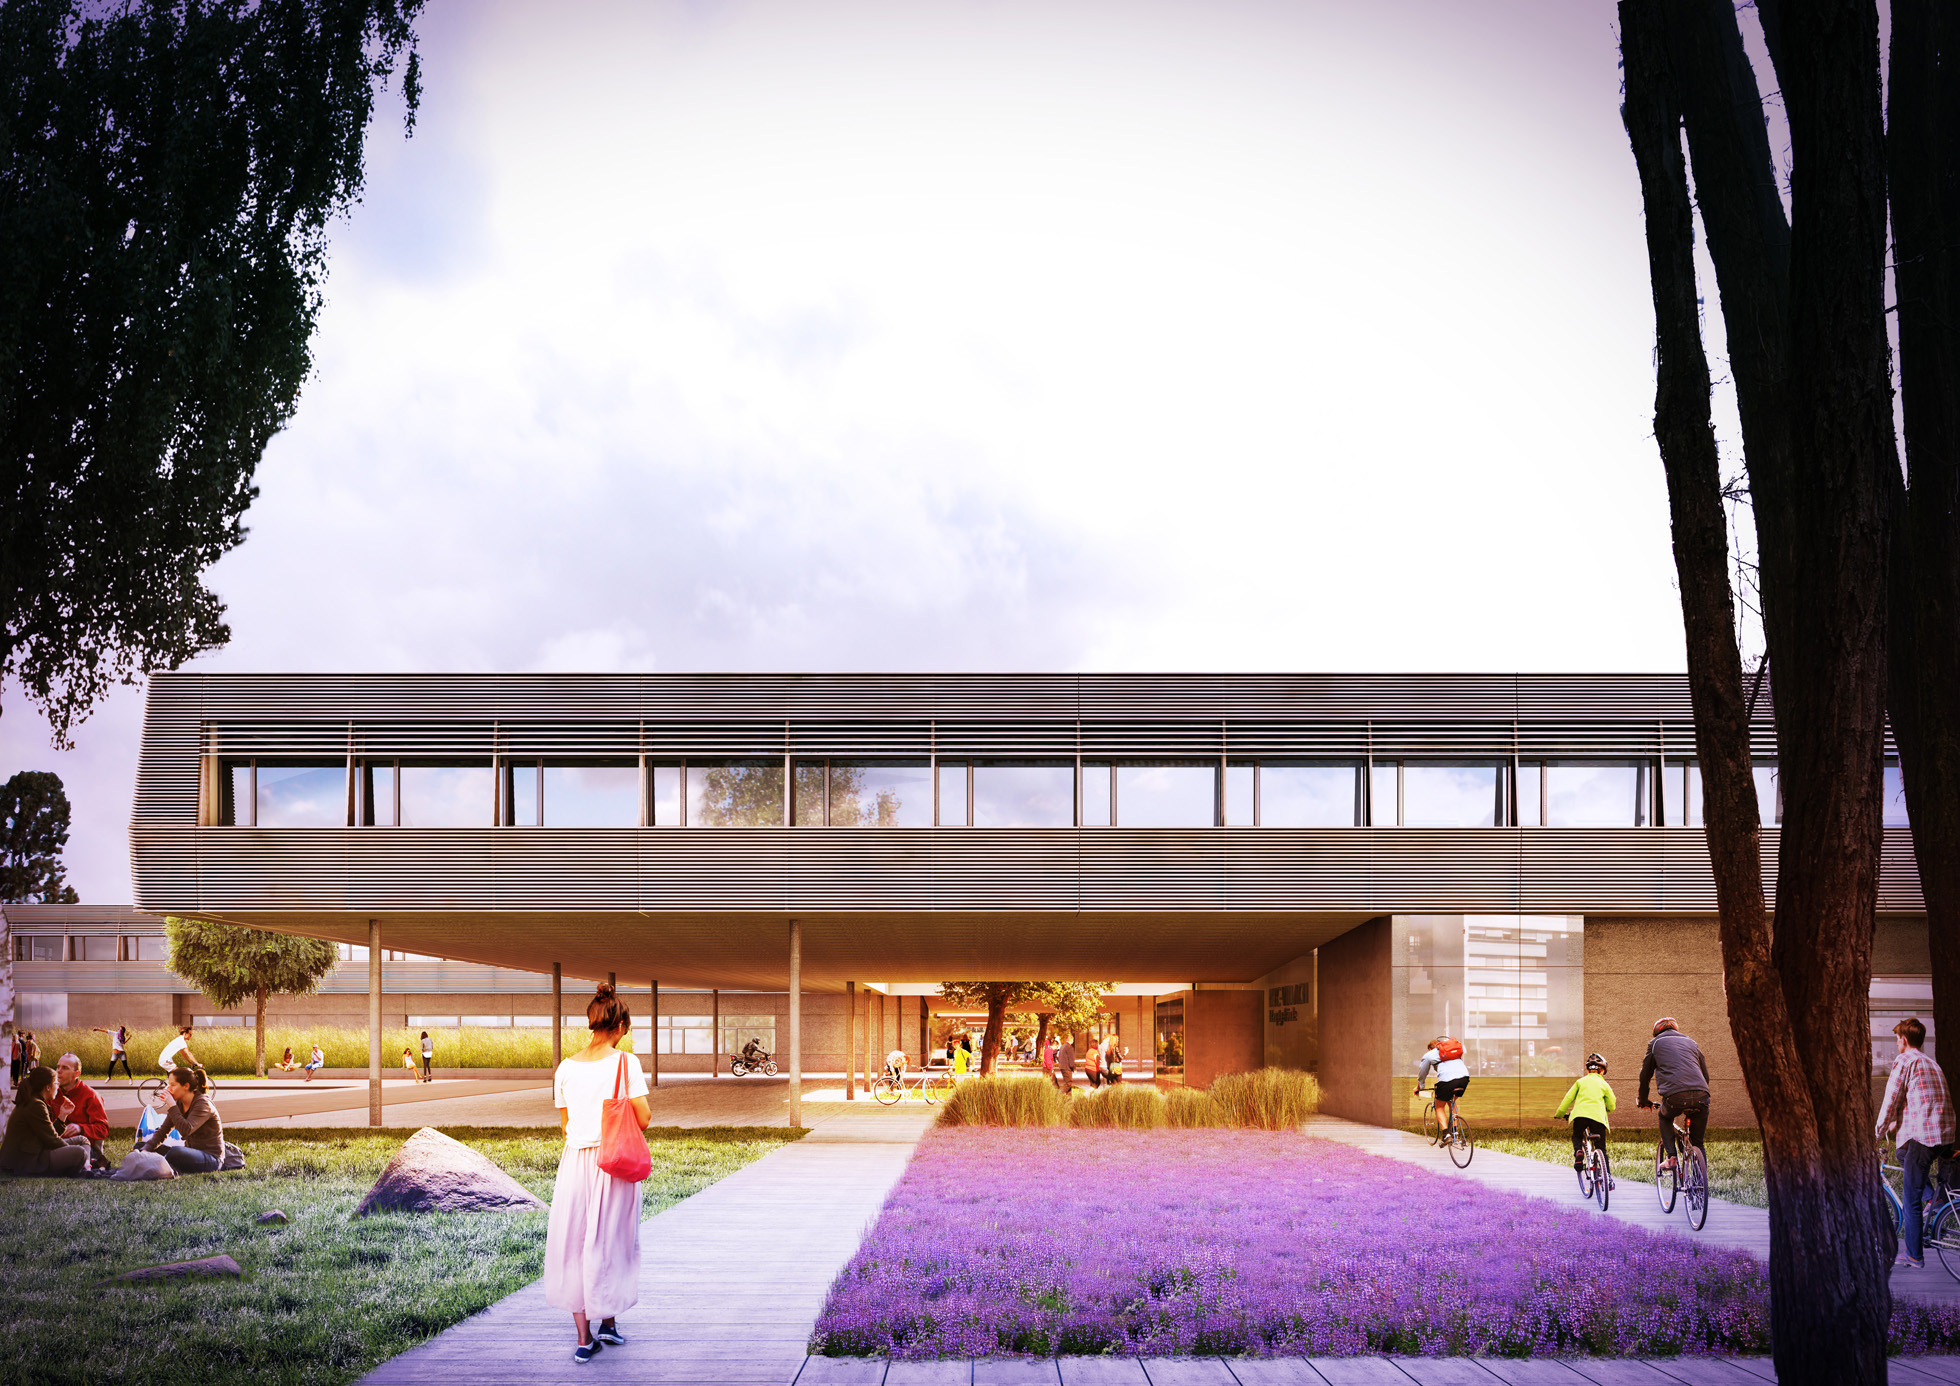 Bramberger Wins Competition to Design High Tech Campus in Austria, Communications Promenade. Image © Bramberger Architects